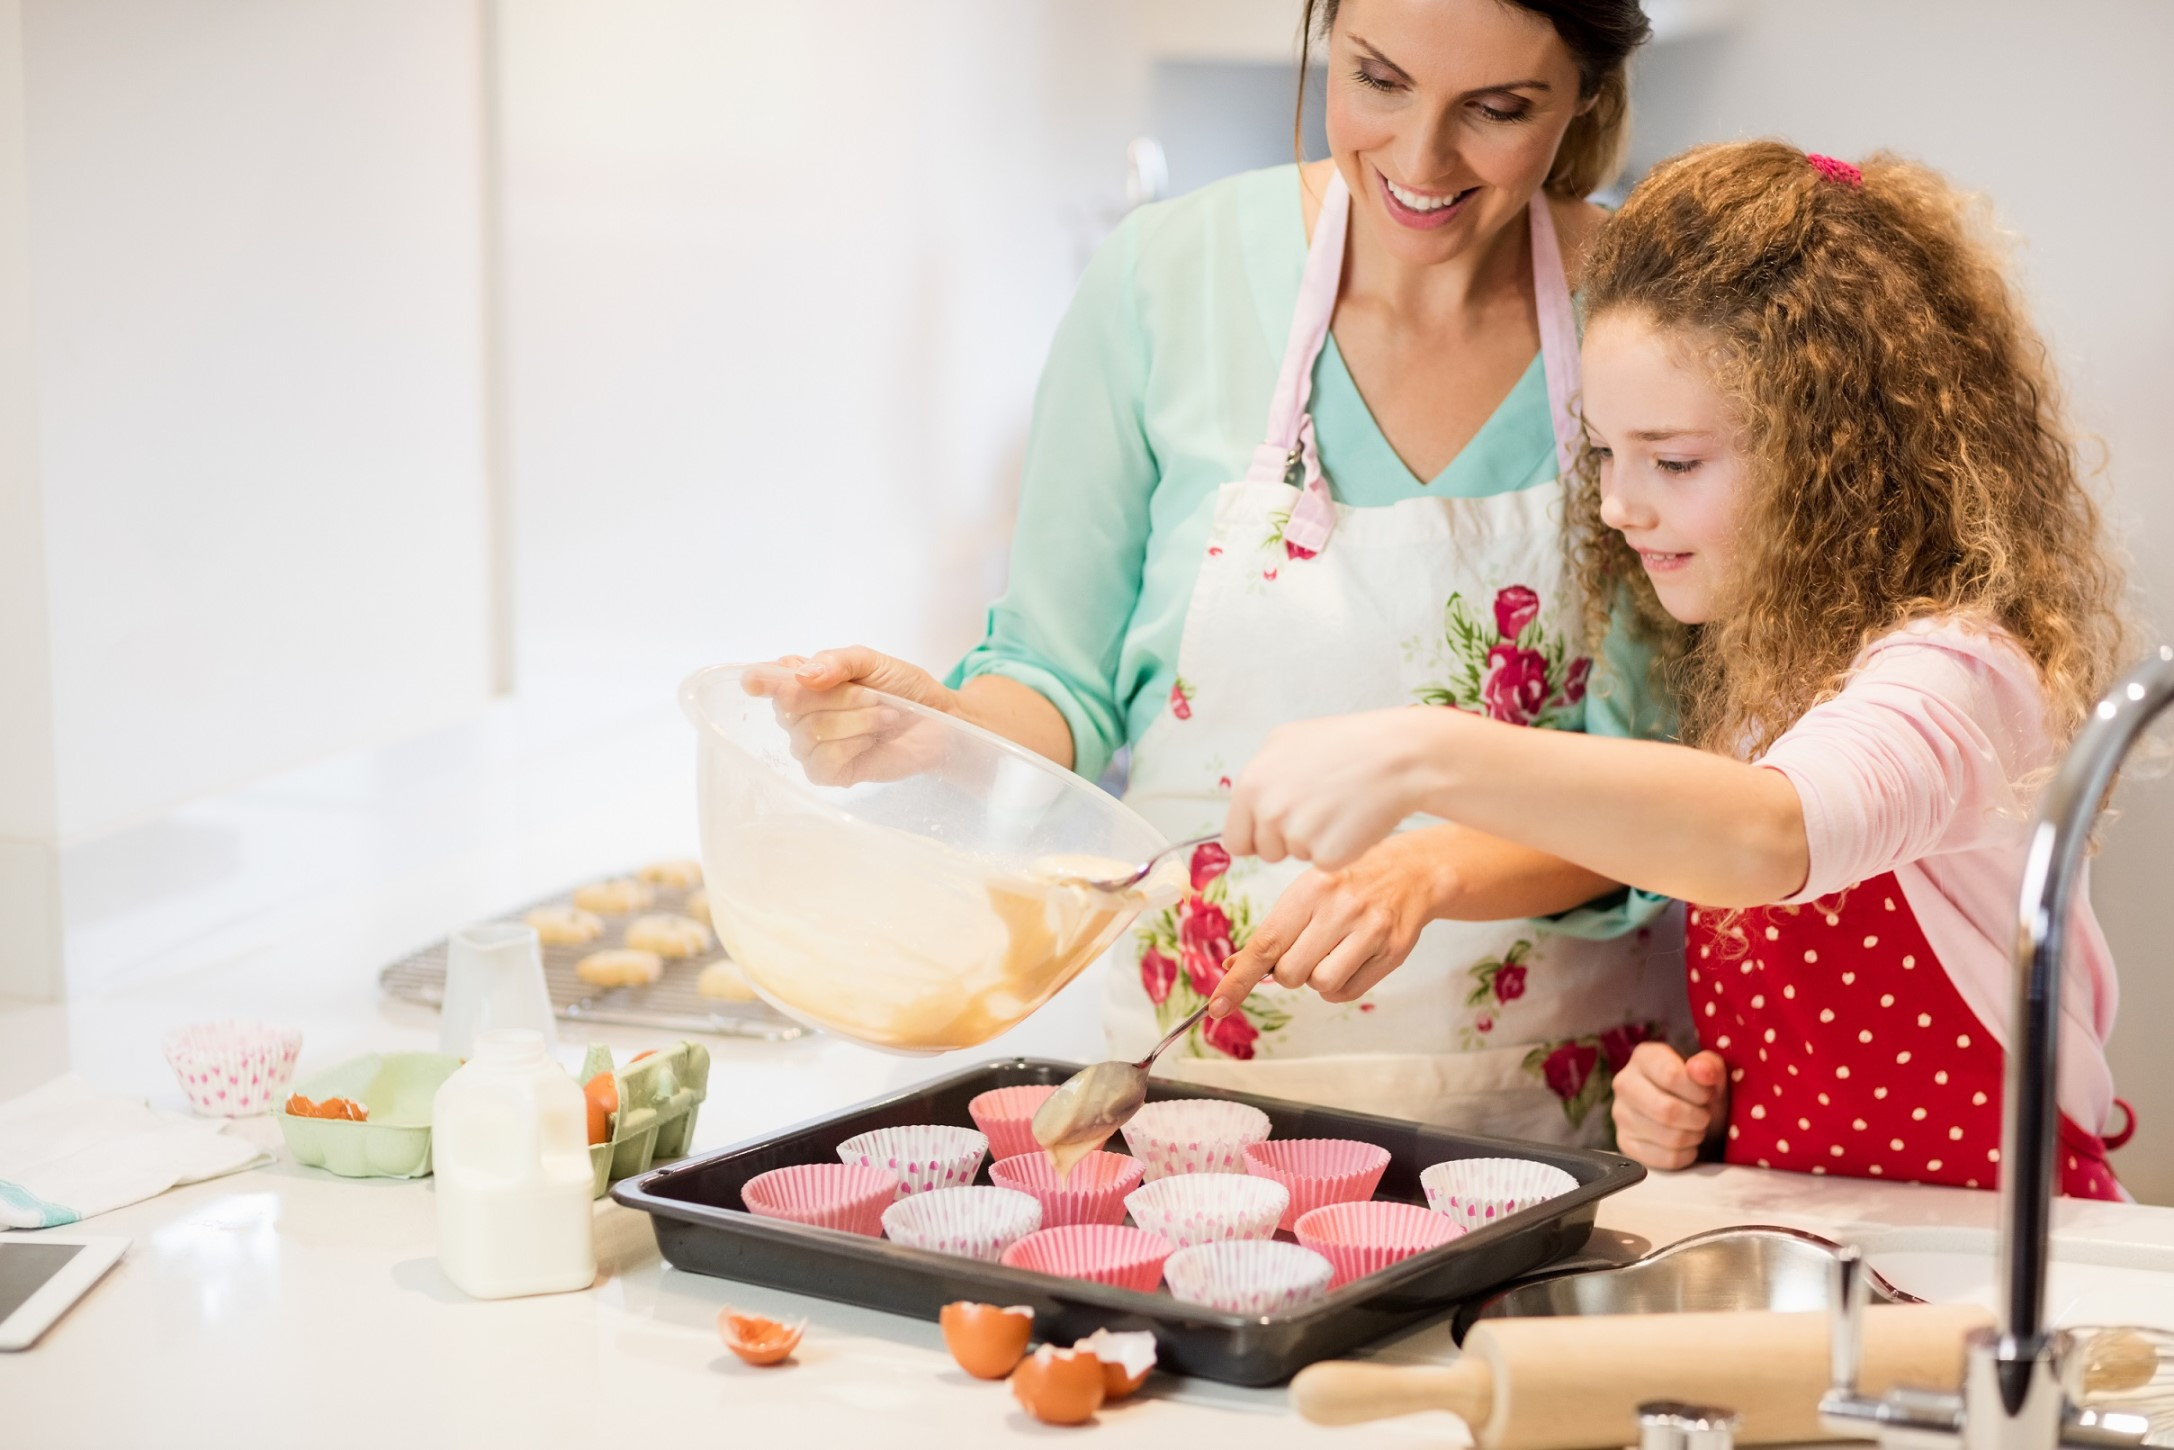 parent cooking and baking with child